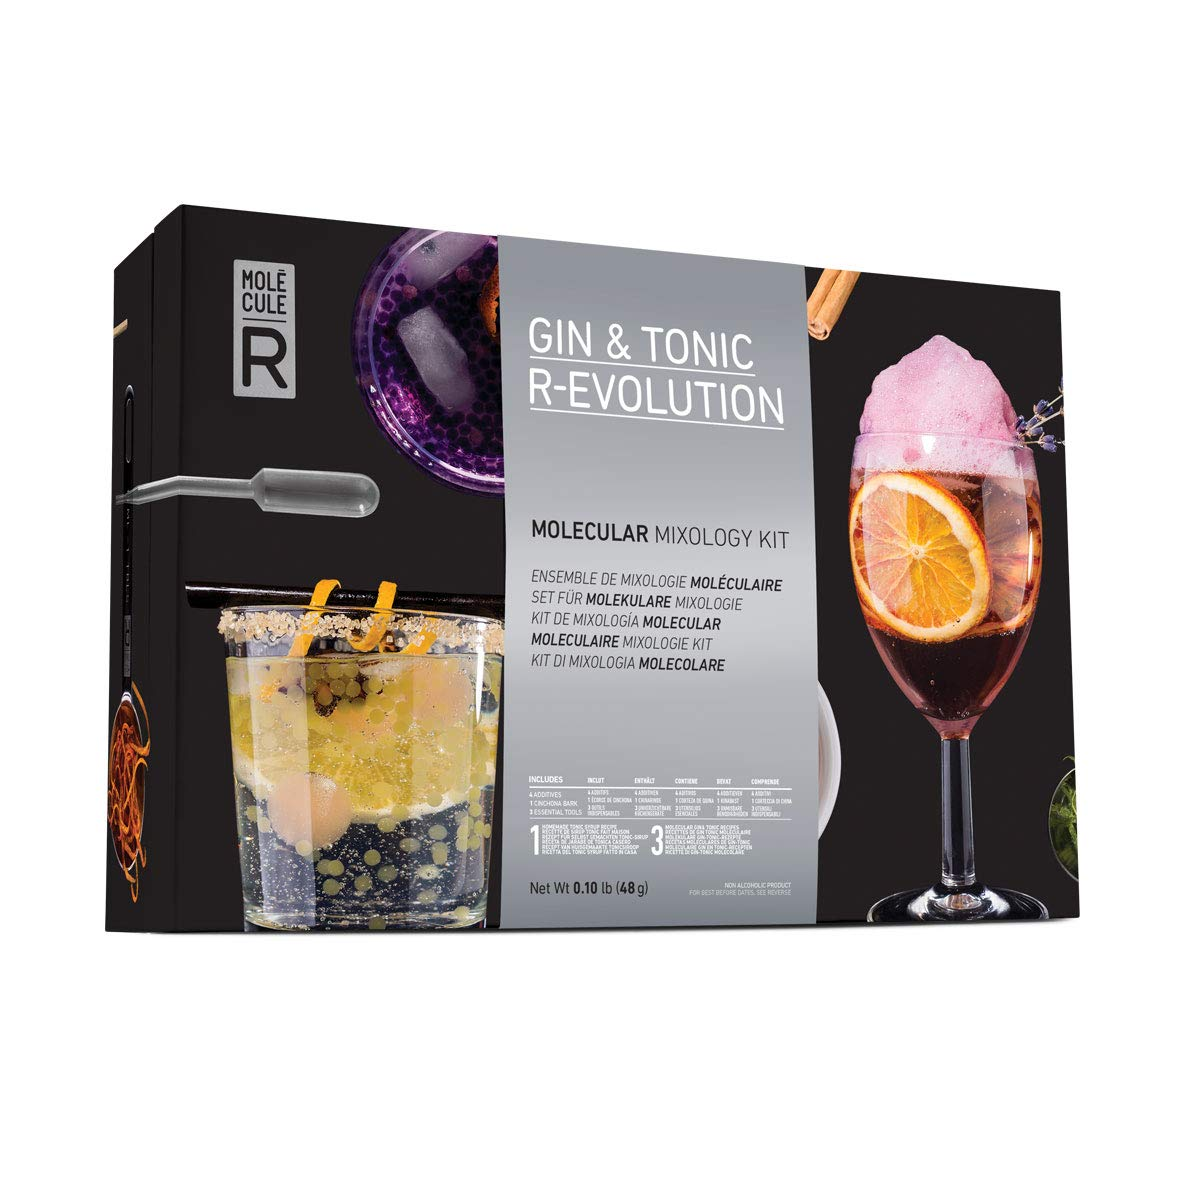 Molecule-R R-Evolution Gin y Tonic Kit: Amazon.es: Industria ...